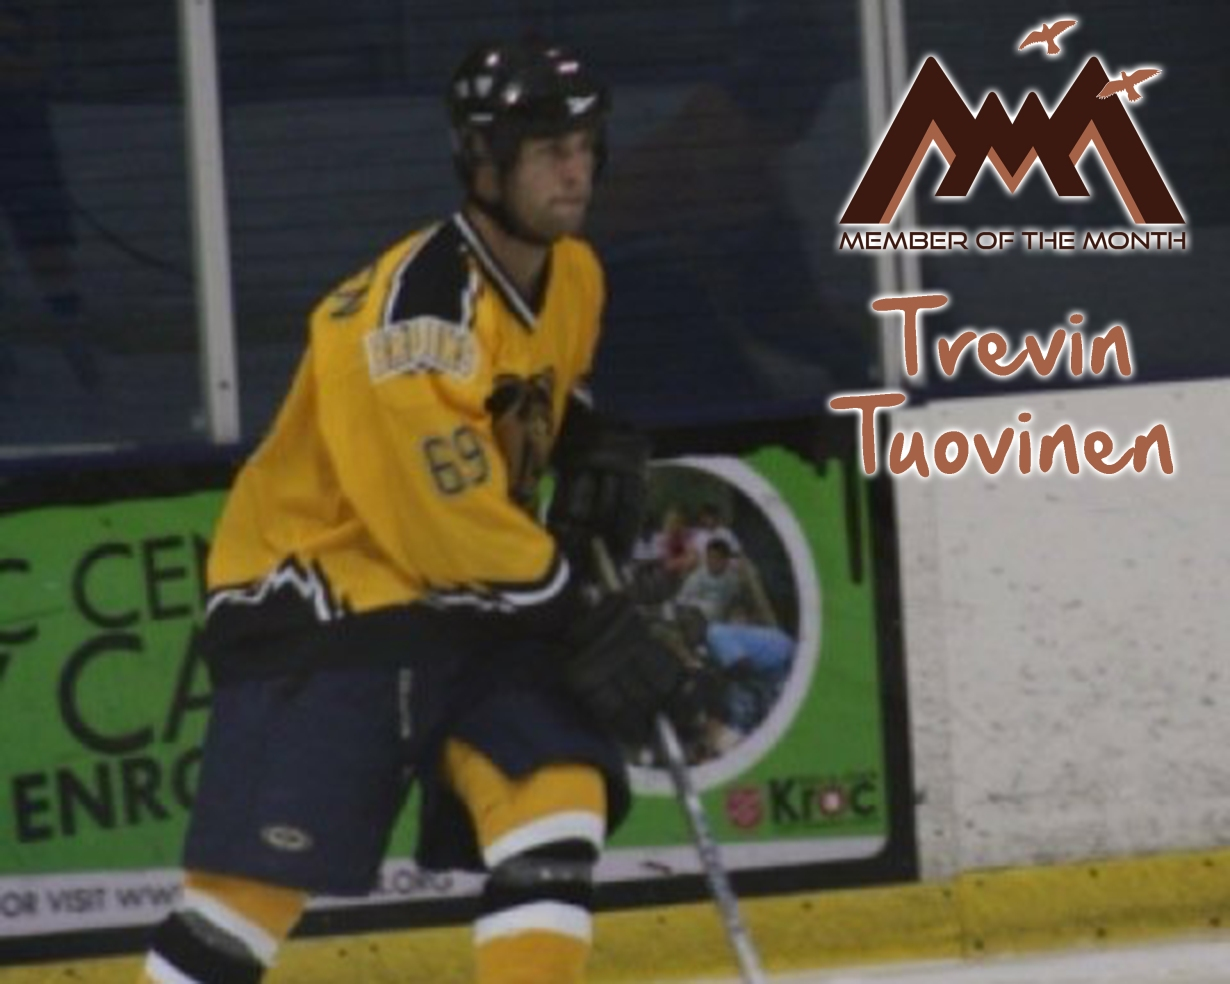 Mesa Rim Member of the Month: Trevin Tuovinen